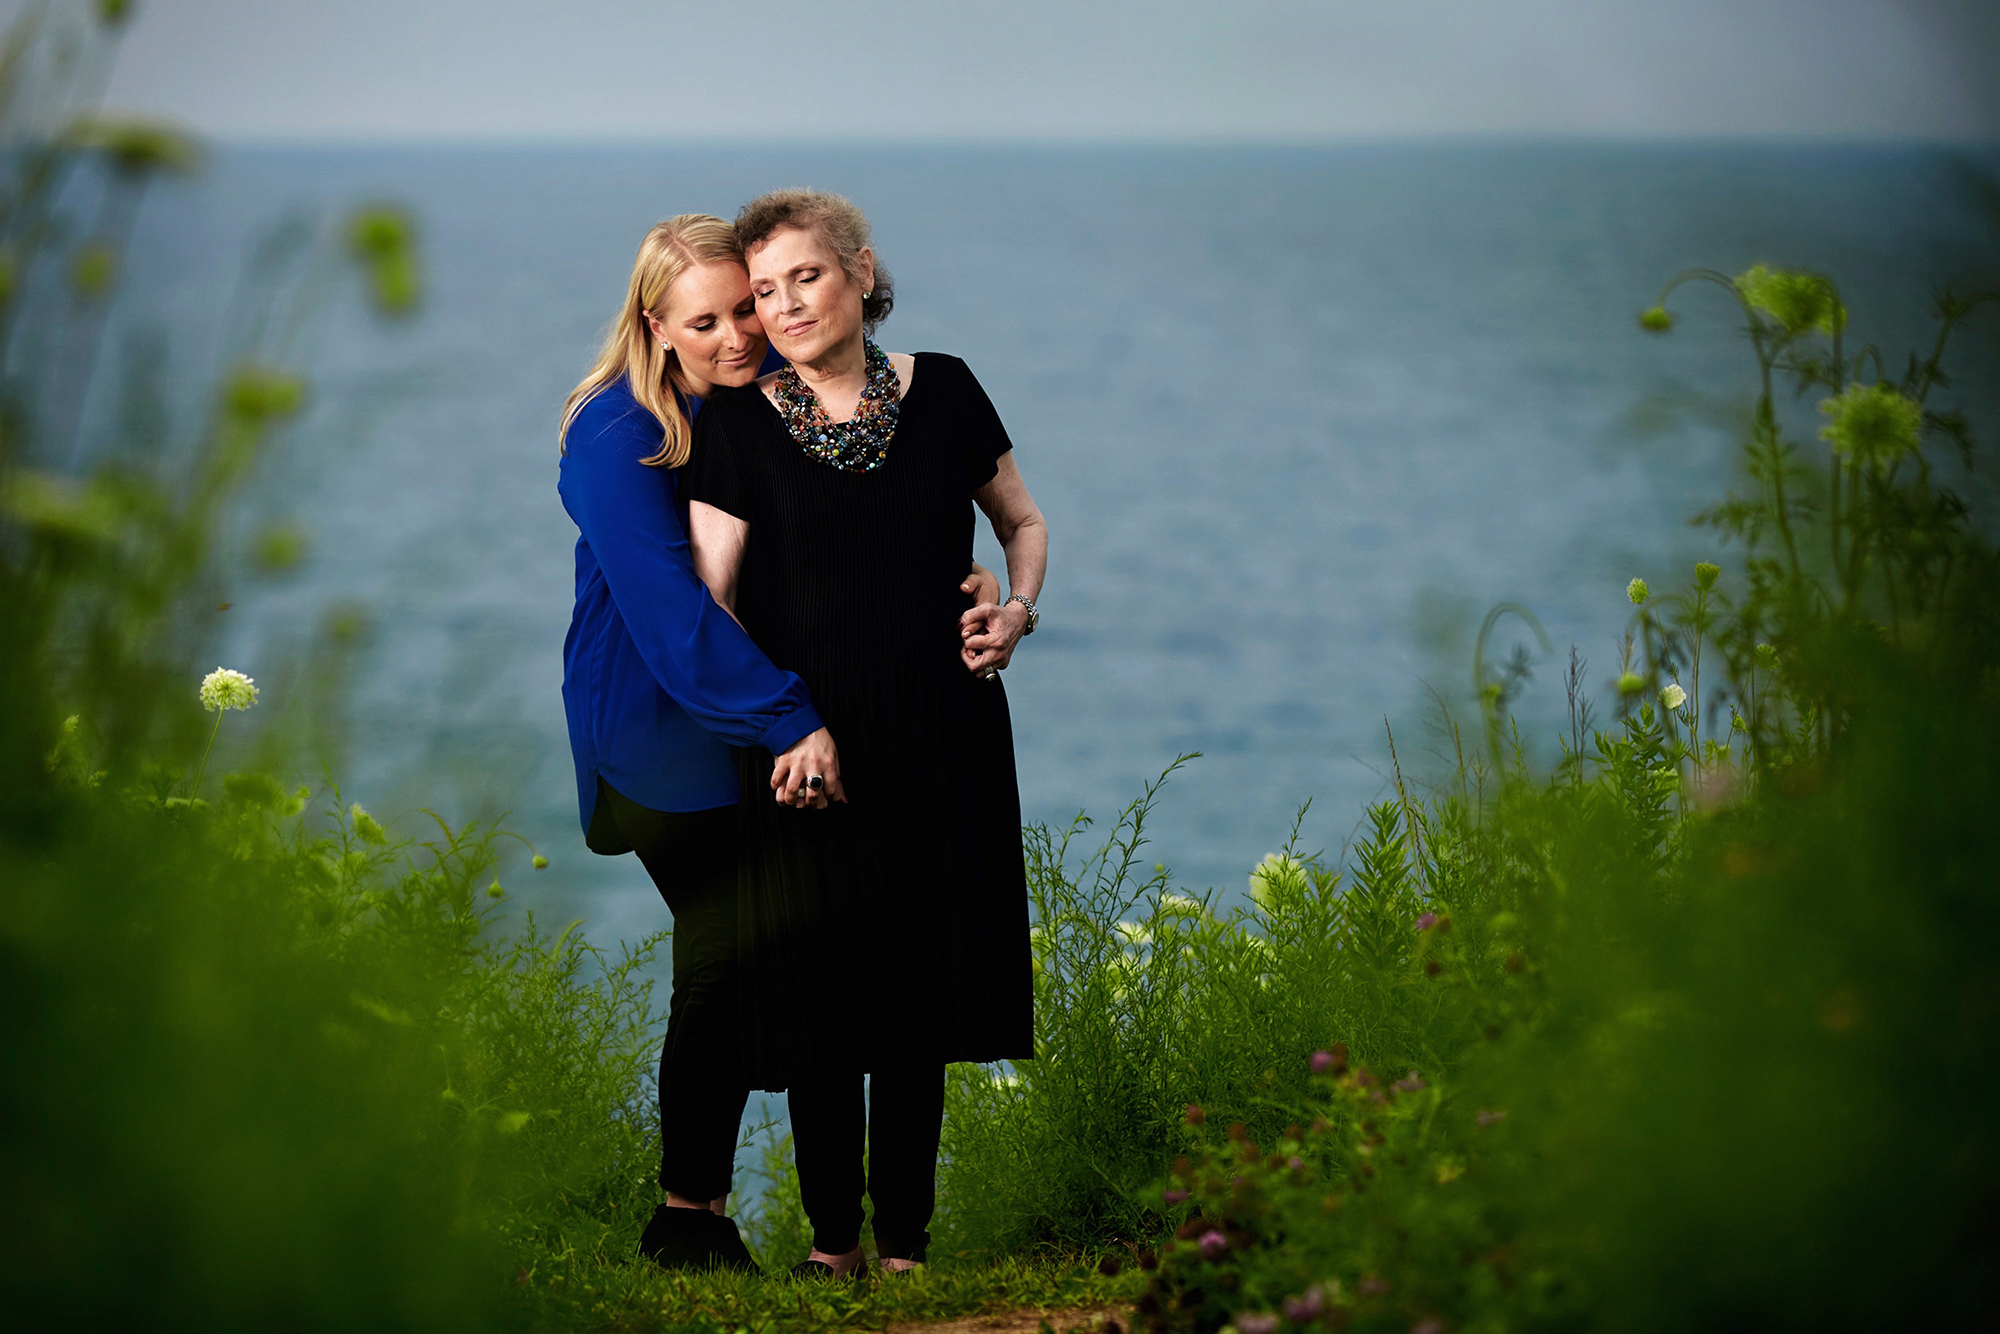 mother-daughter-portrait.jpg